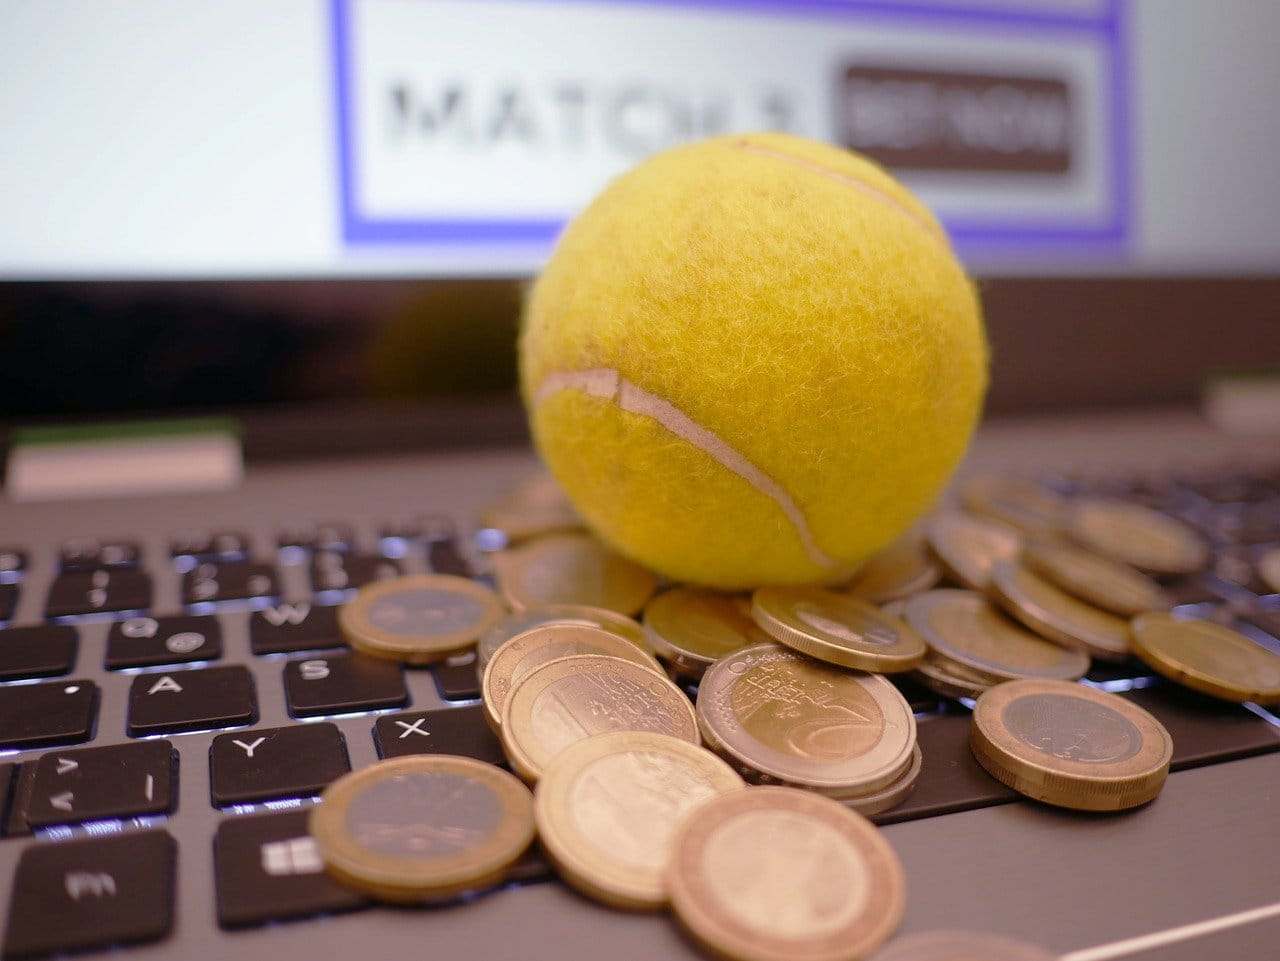 A tennis ball and a pile of euros resting on a computer keyboard.